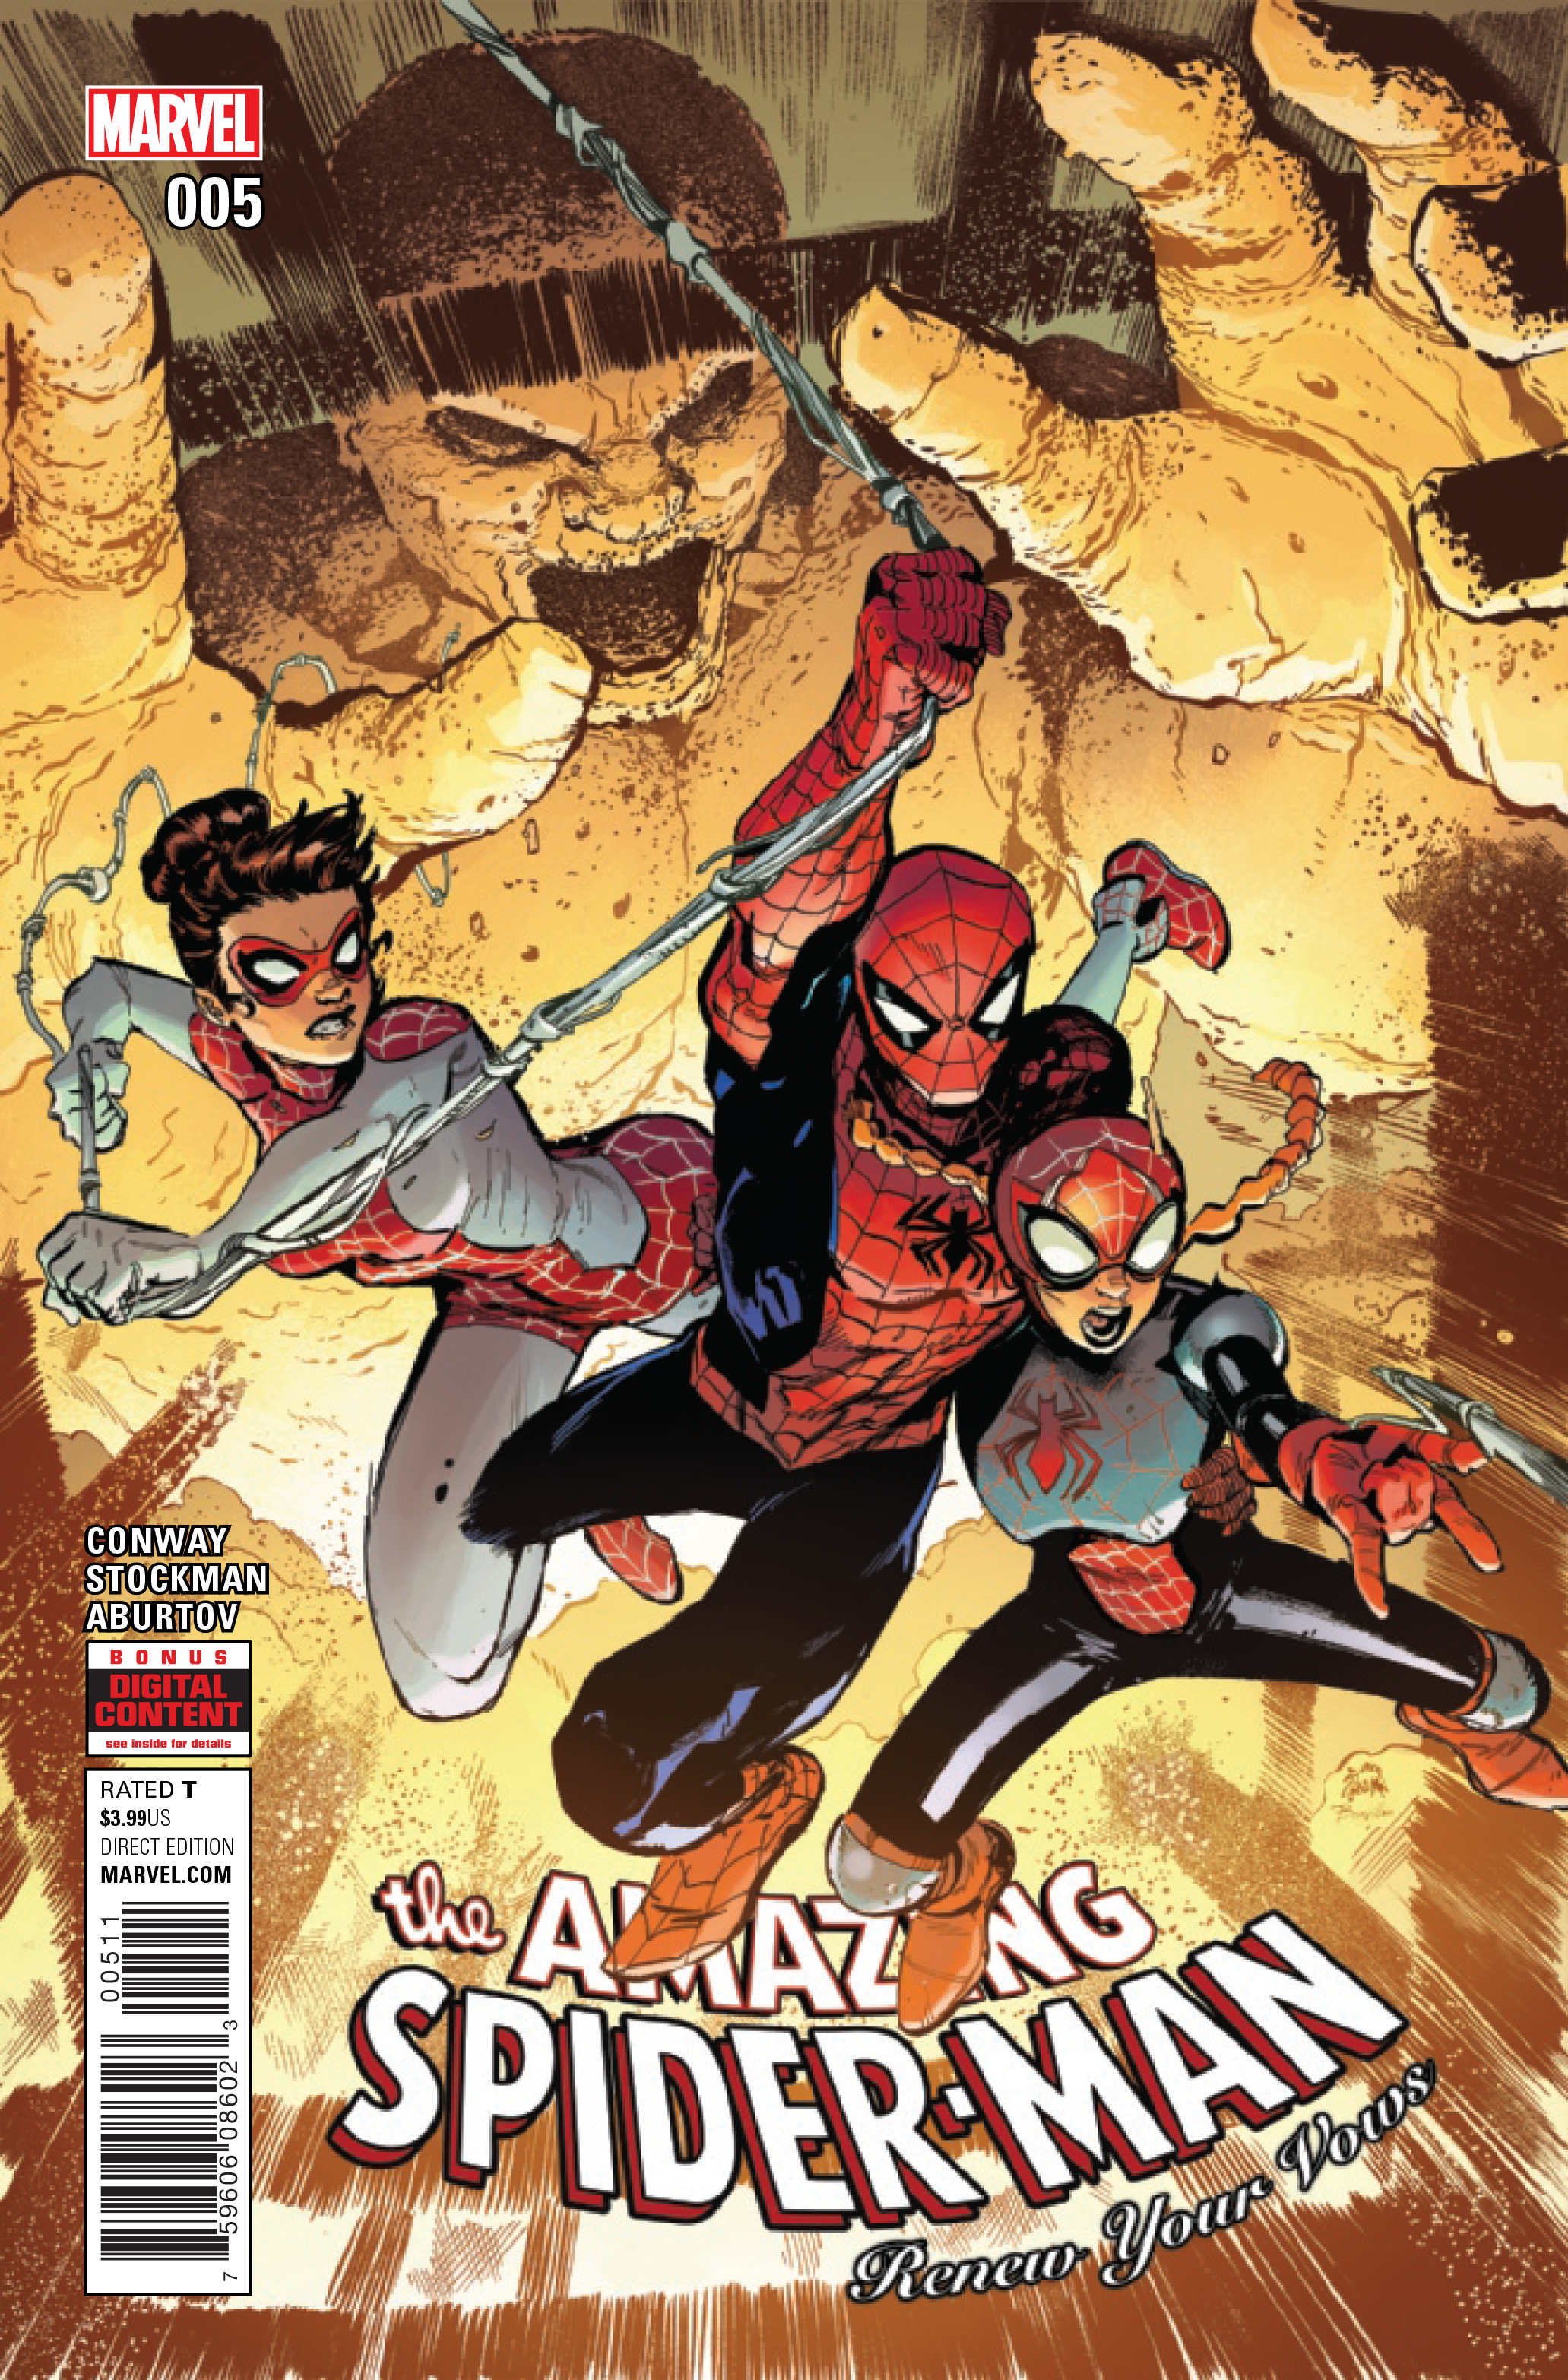 AMAZING SPIDER-MAN RENEW YOUR VOWS #5